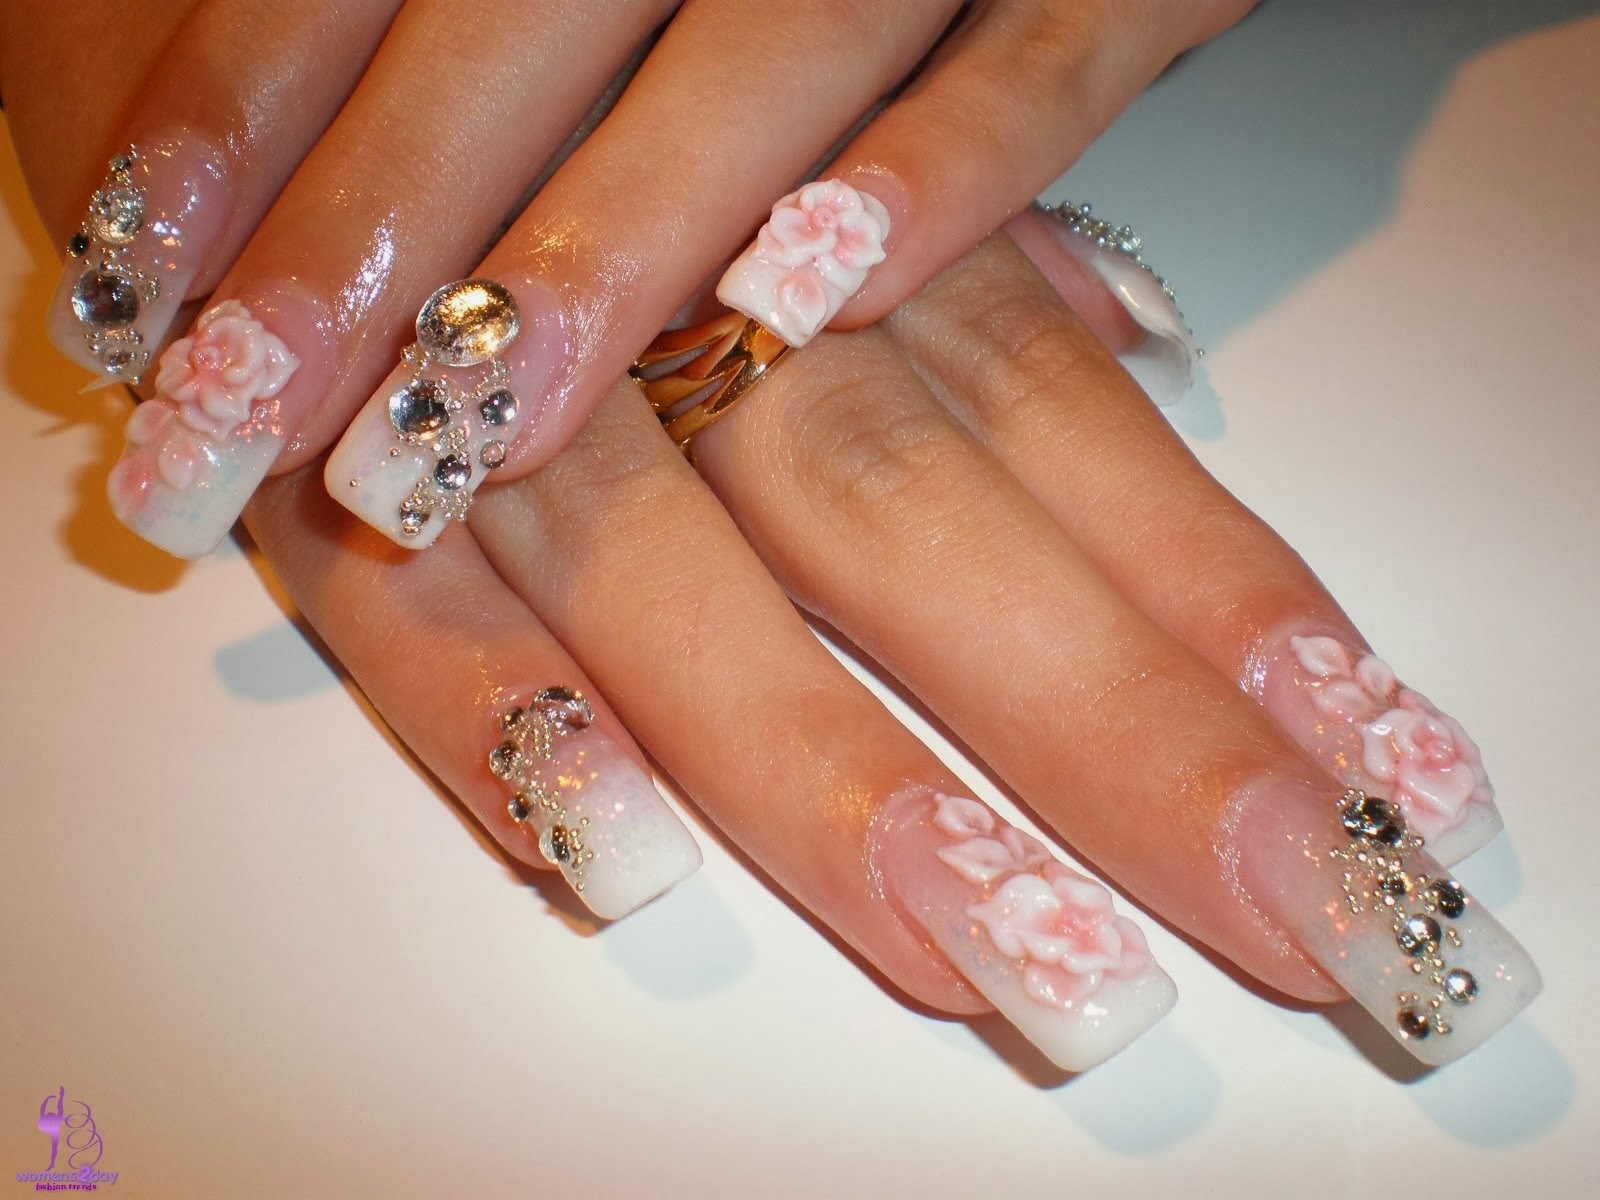 Magnificent New Style Of Nails Mold - Nail Art Design Ideas ...